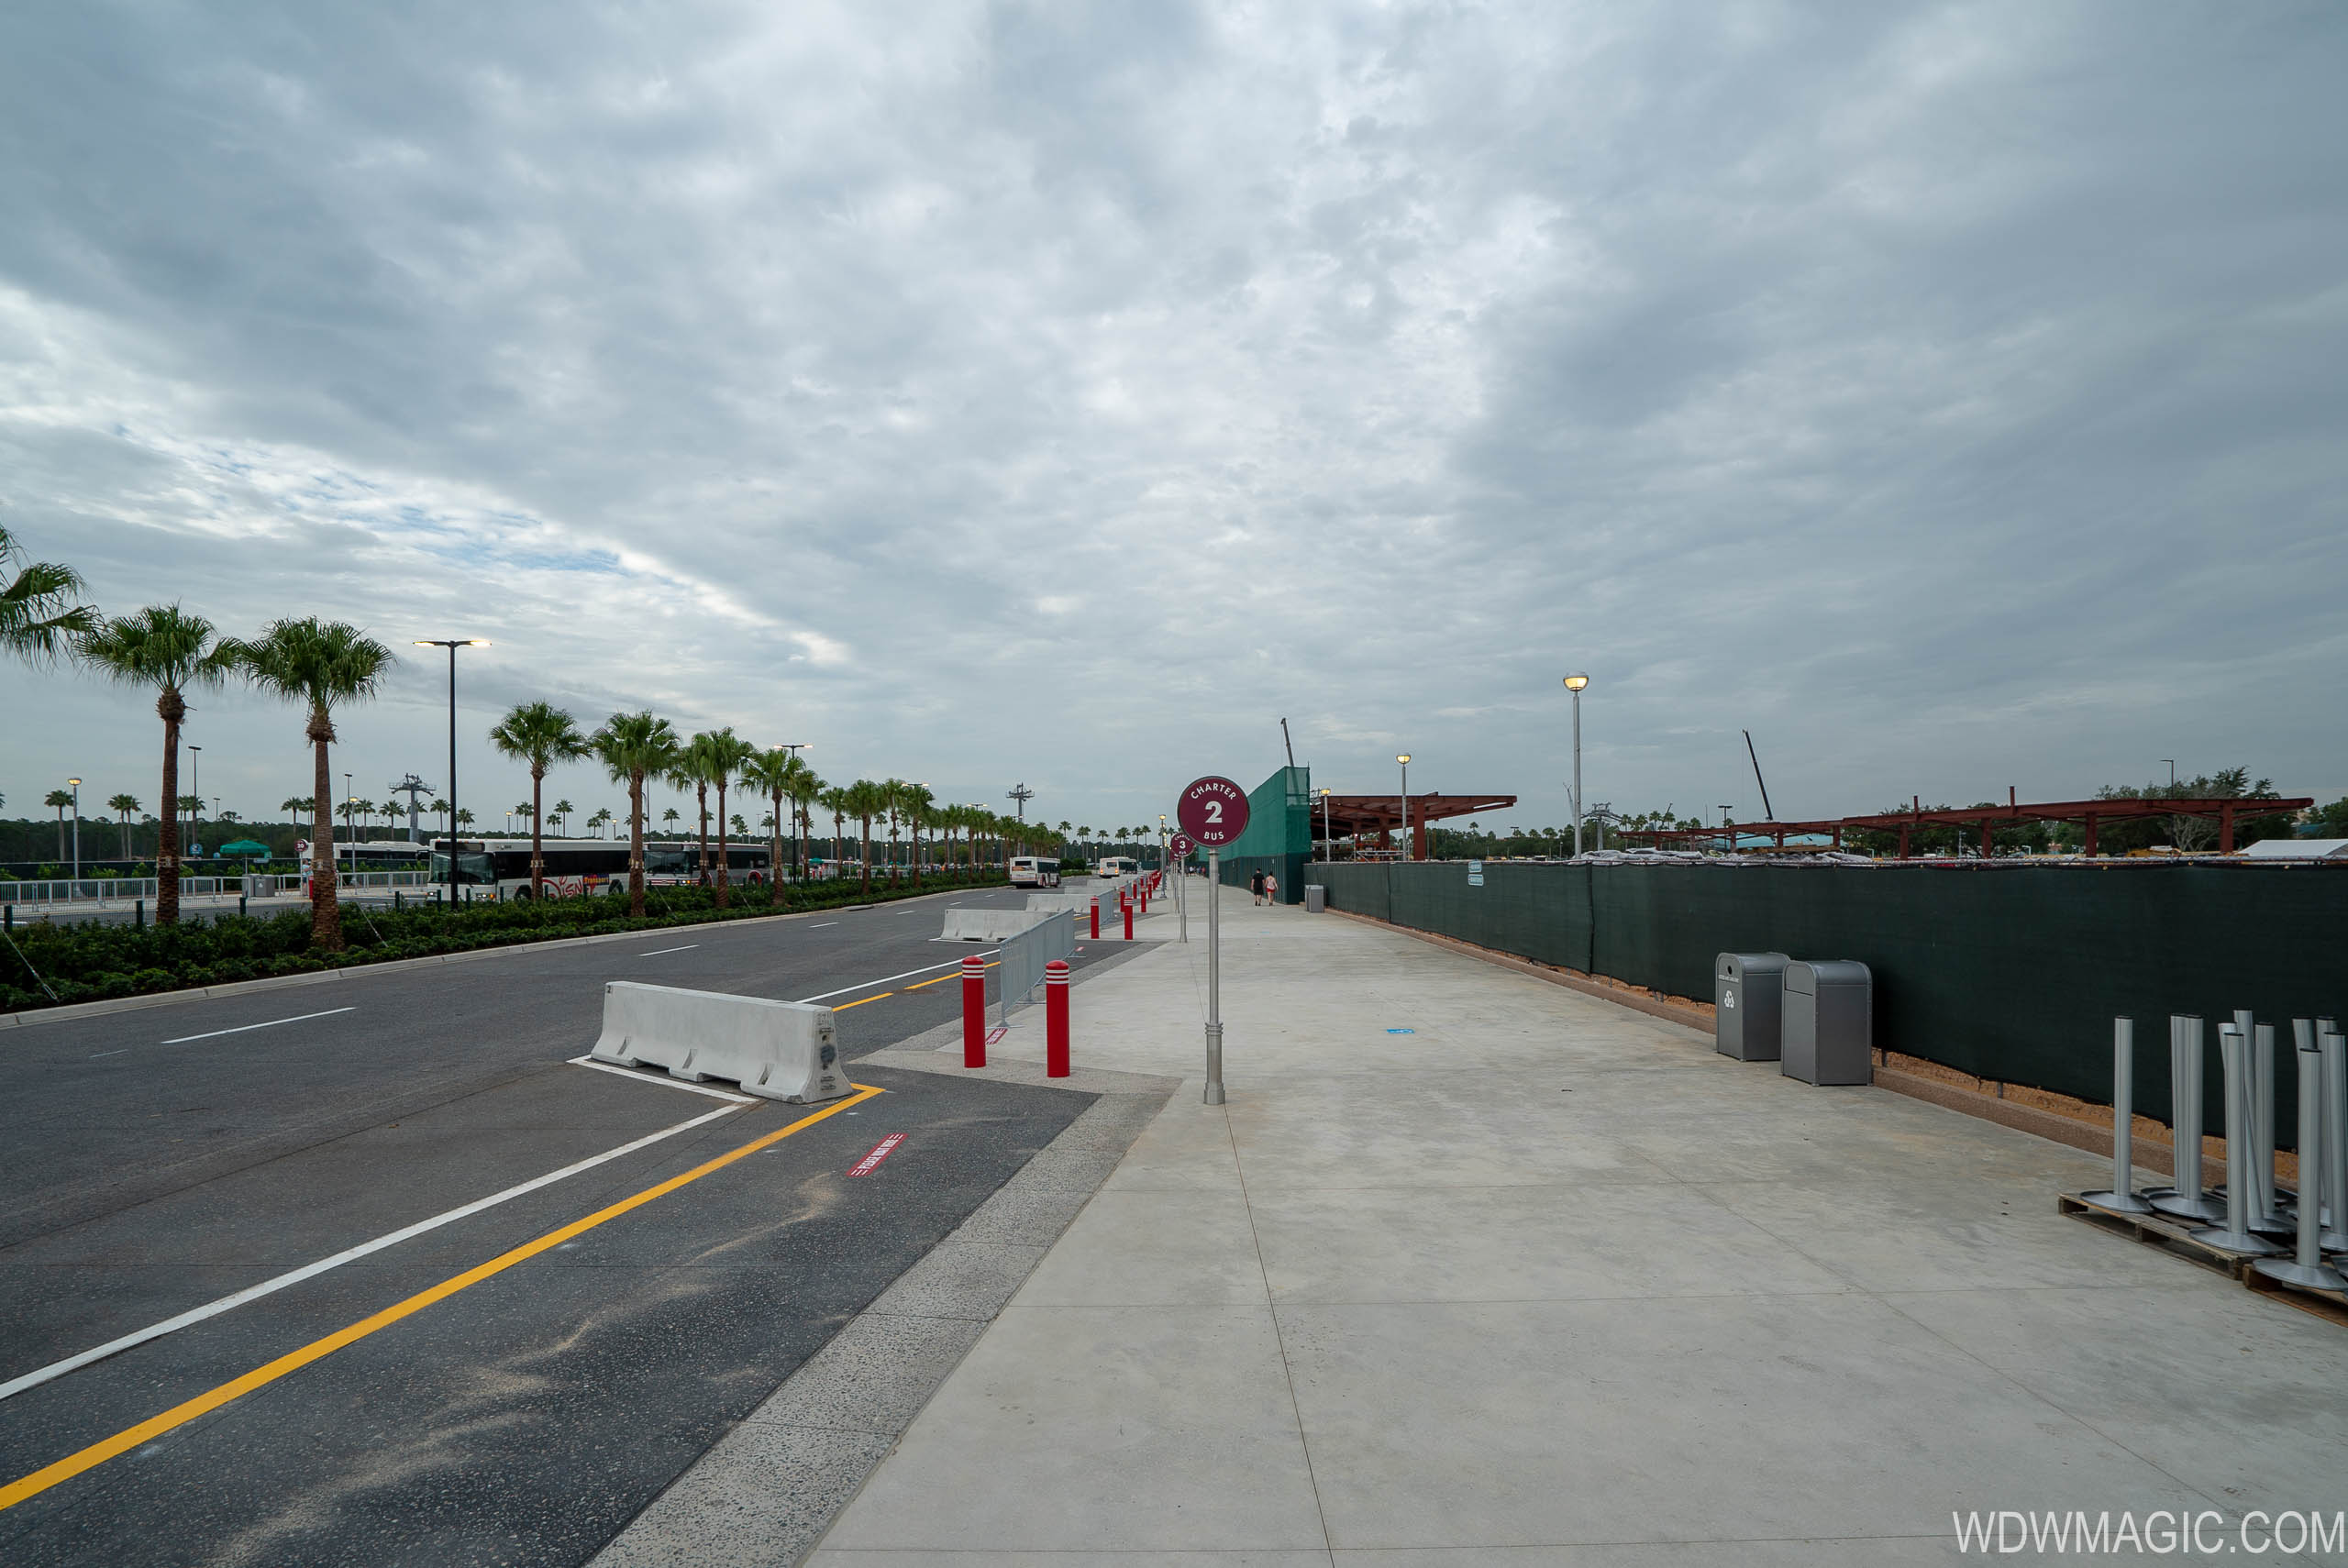 New Charter Bus stop area at Disney's Hollywood Studios